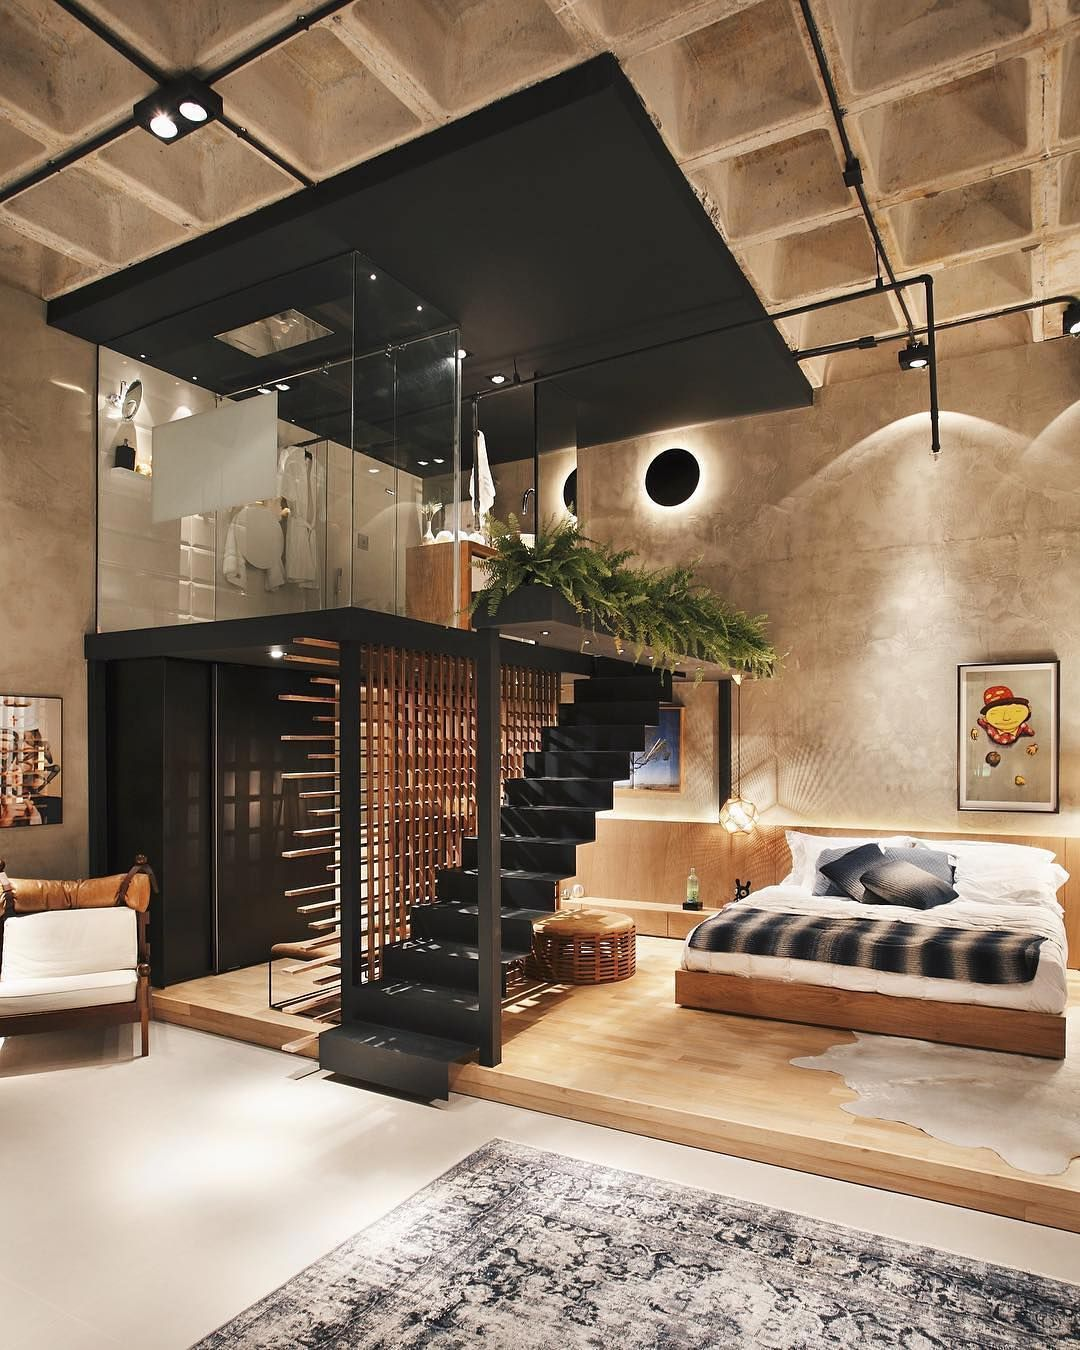 The Luxury Interior On Instagram Any Thoughts On This Beautiful